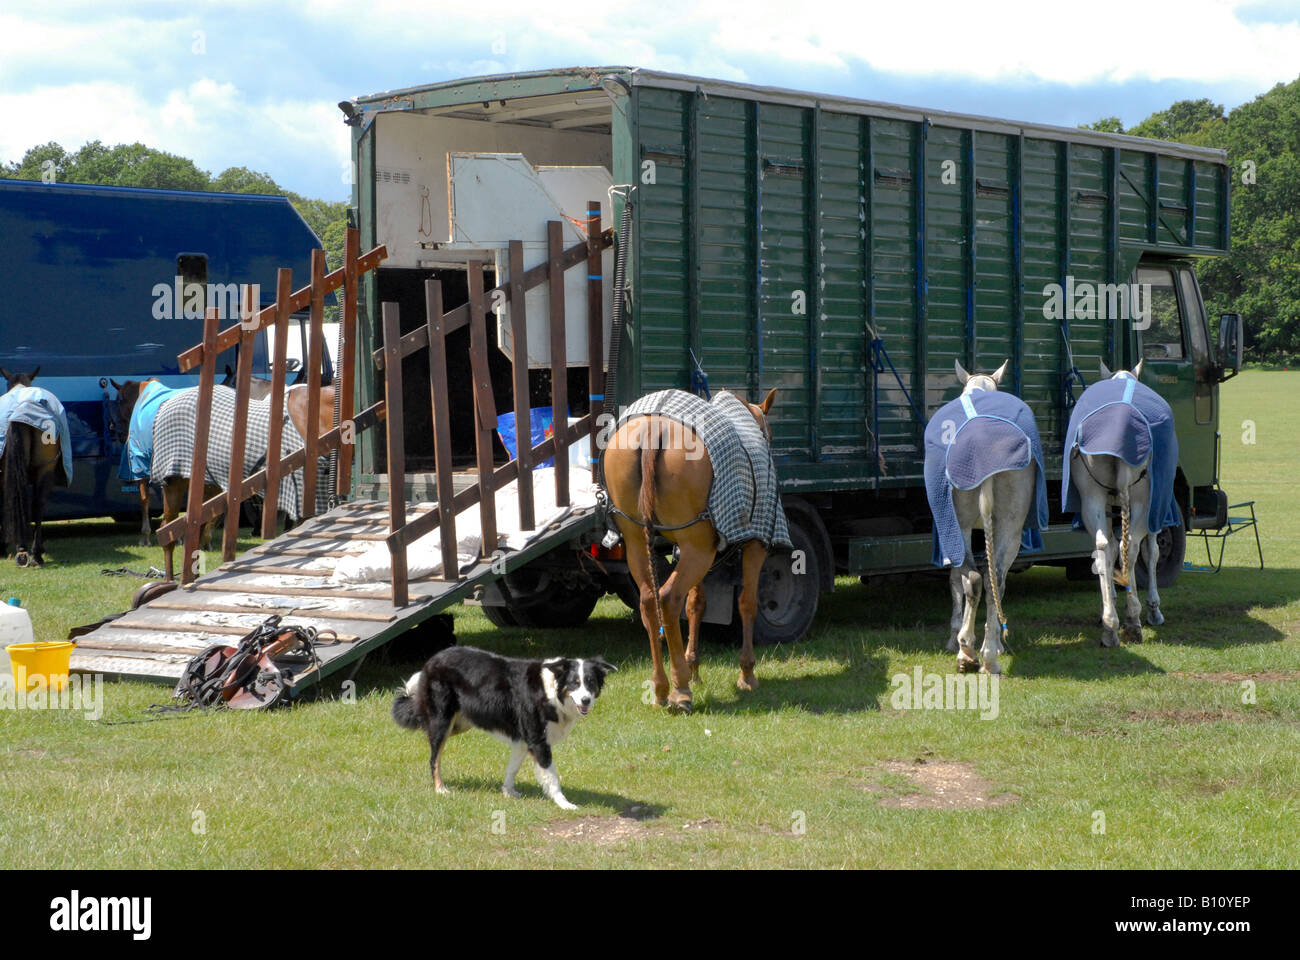 Polo ponies in horse blankets tied up by he horse van before the meeting with dog - Stock Image